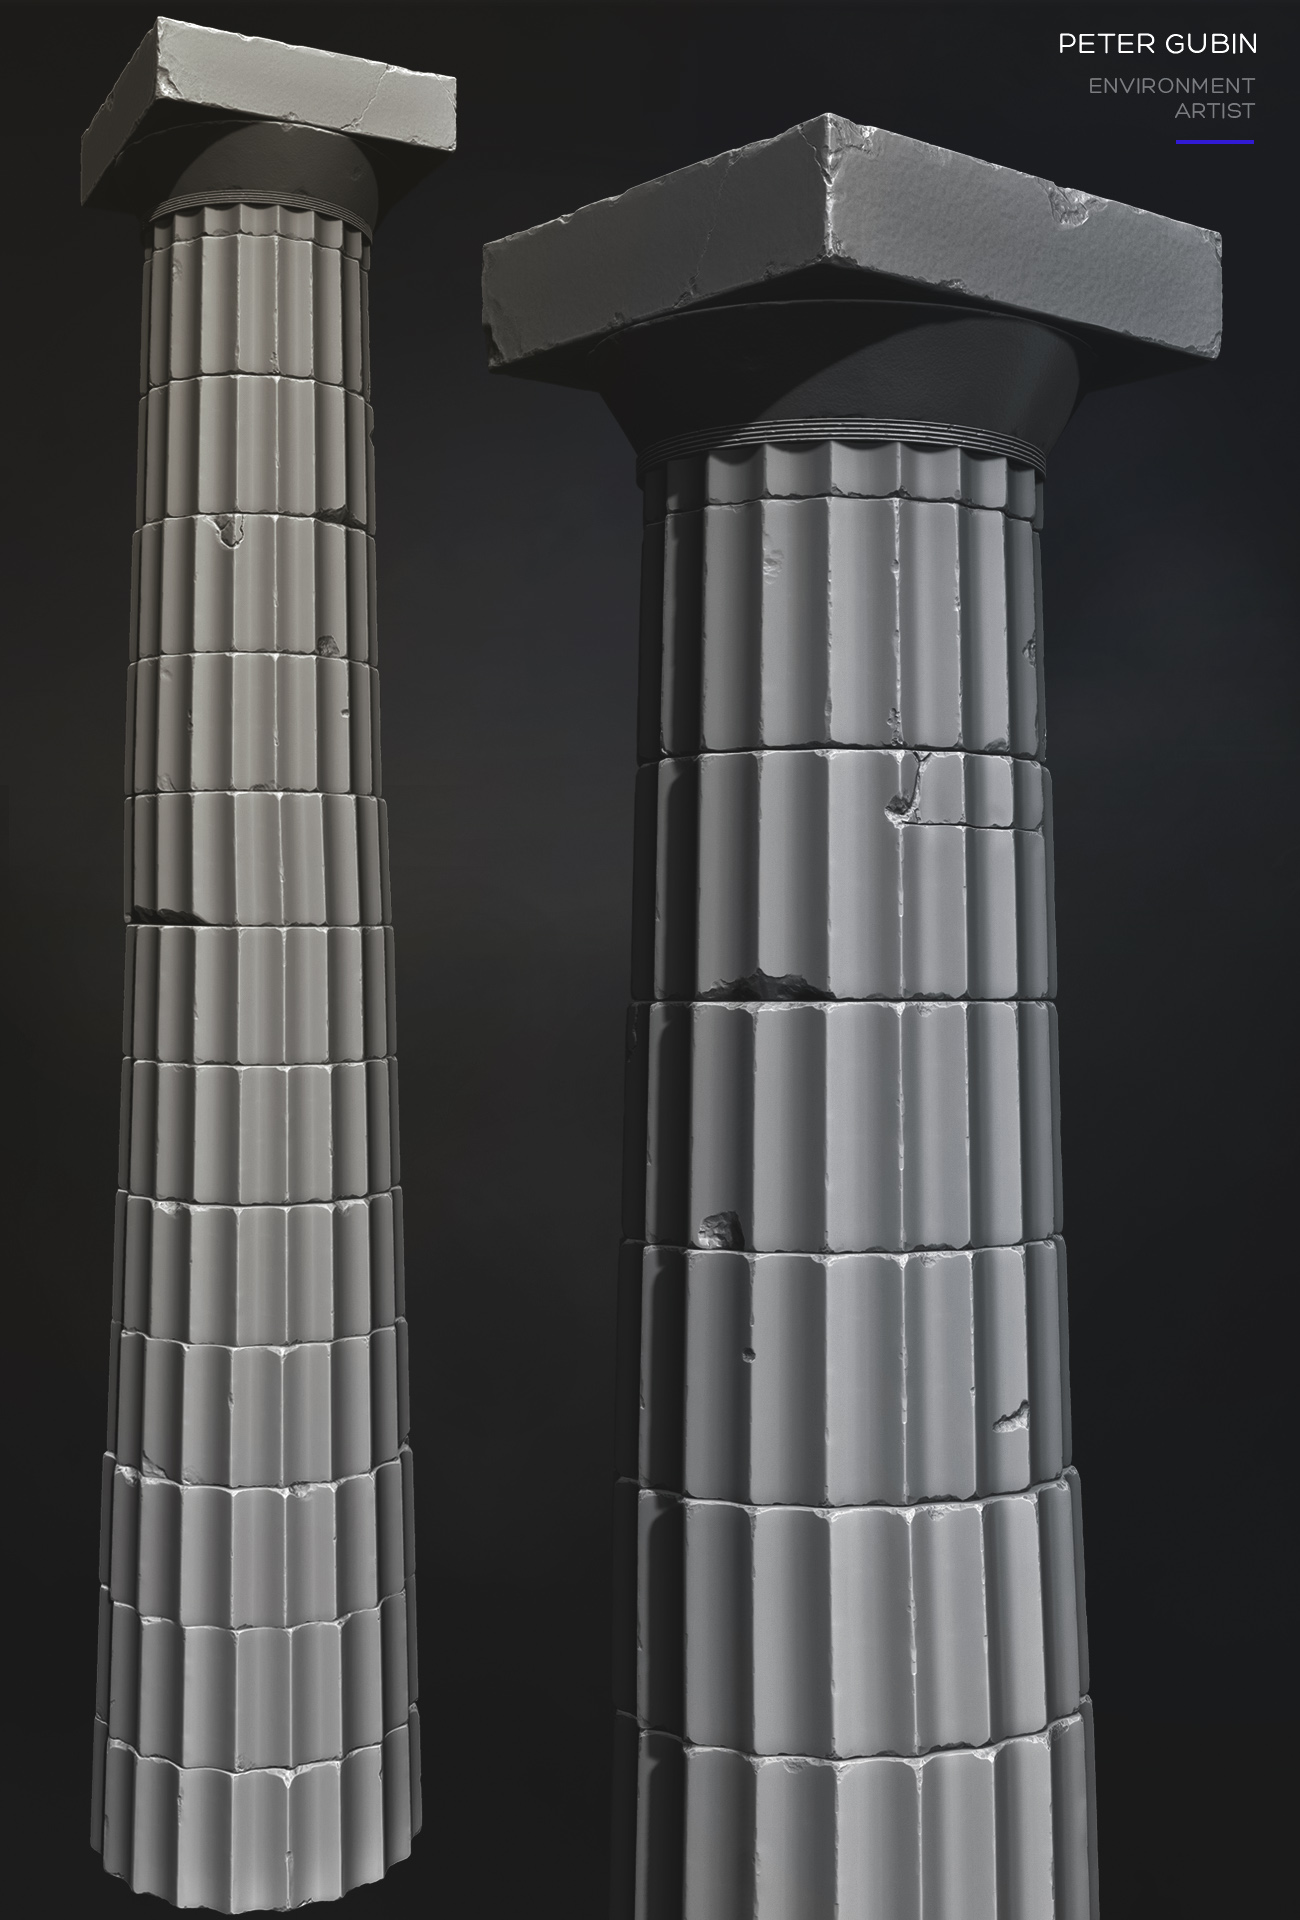 Zbrush study of the doric column of Parthenon, Athenian Acropolis (Greece). Architects - Ictinus and Calicrates (447 - 432 BC).